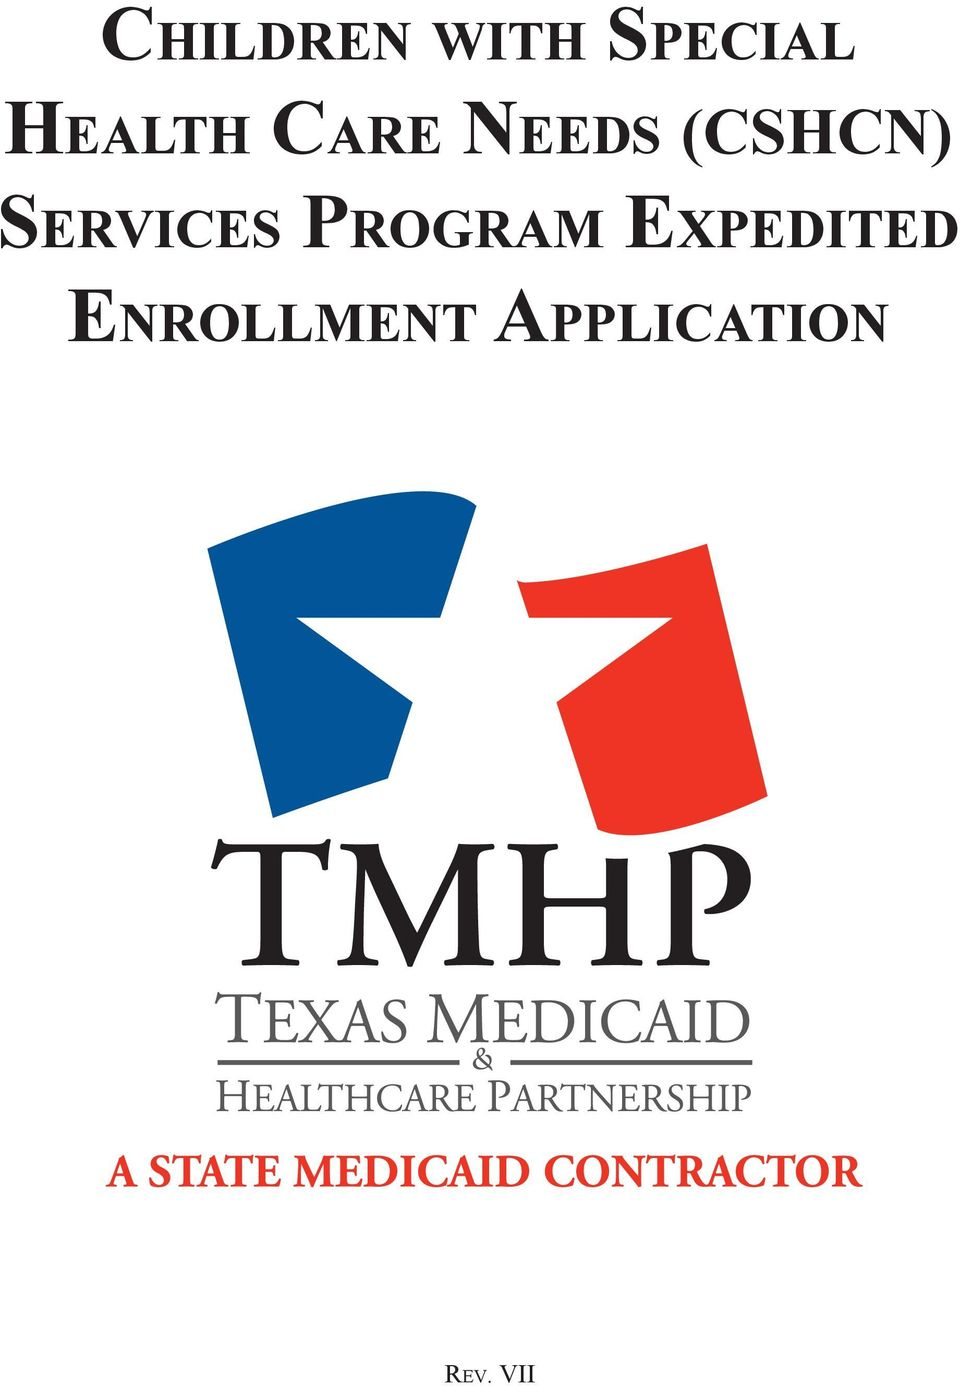 Services Program Expedited